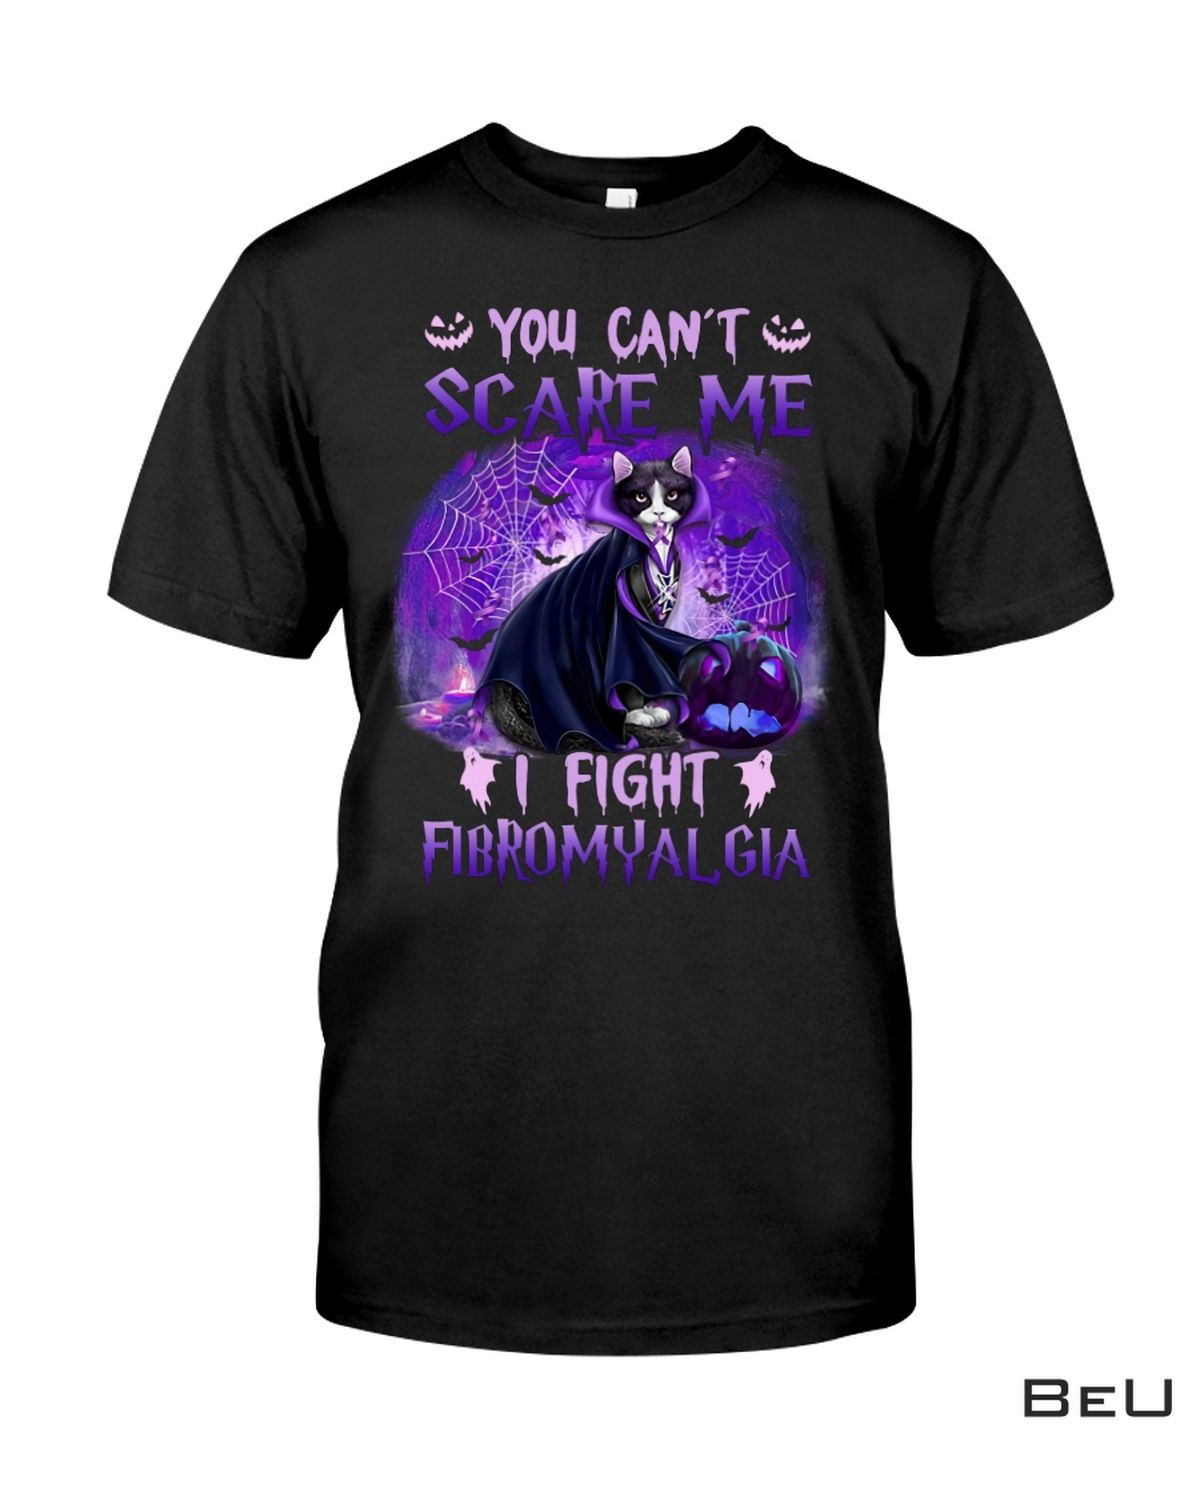 You Can't Scare Me I Fight Fibromyalgia Shirt, hoodie, tank top